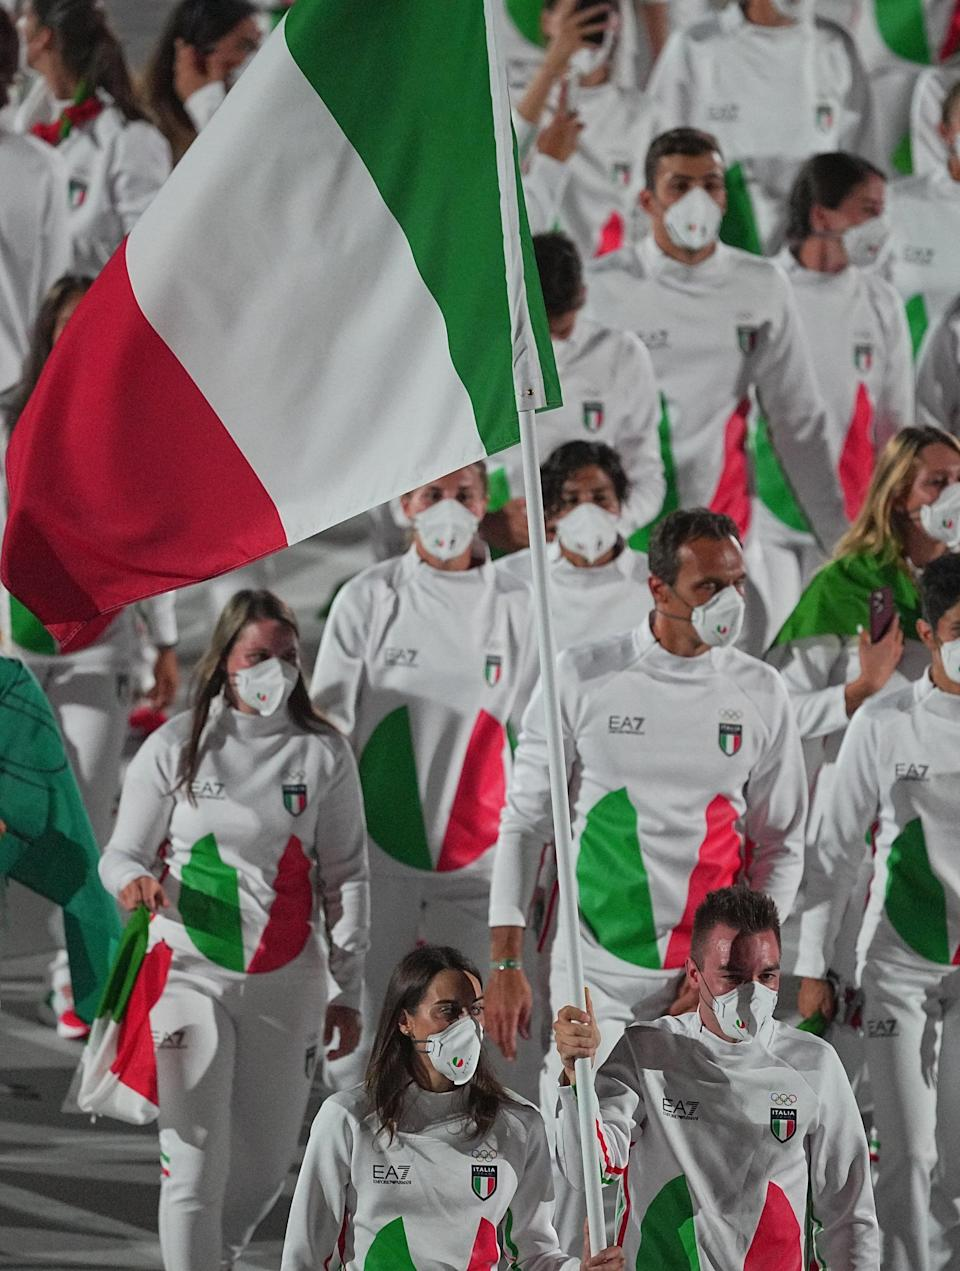 <p>Team Italy opted for these chic red, white, and green EA7 Emporio Armani uniforms for the Opening Ceremony. The best part is that fans can buy garments worn by the team on Armani's website as well. </p>